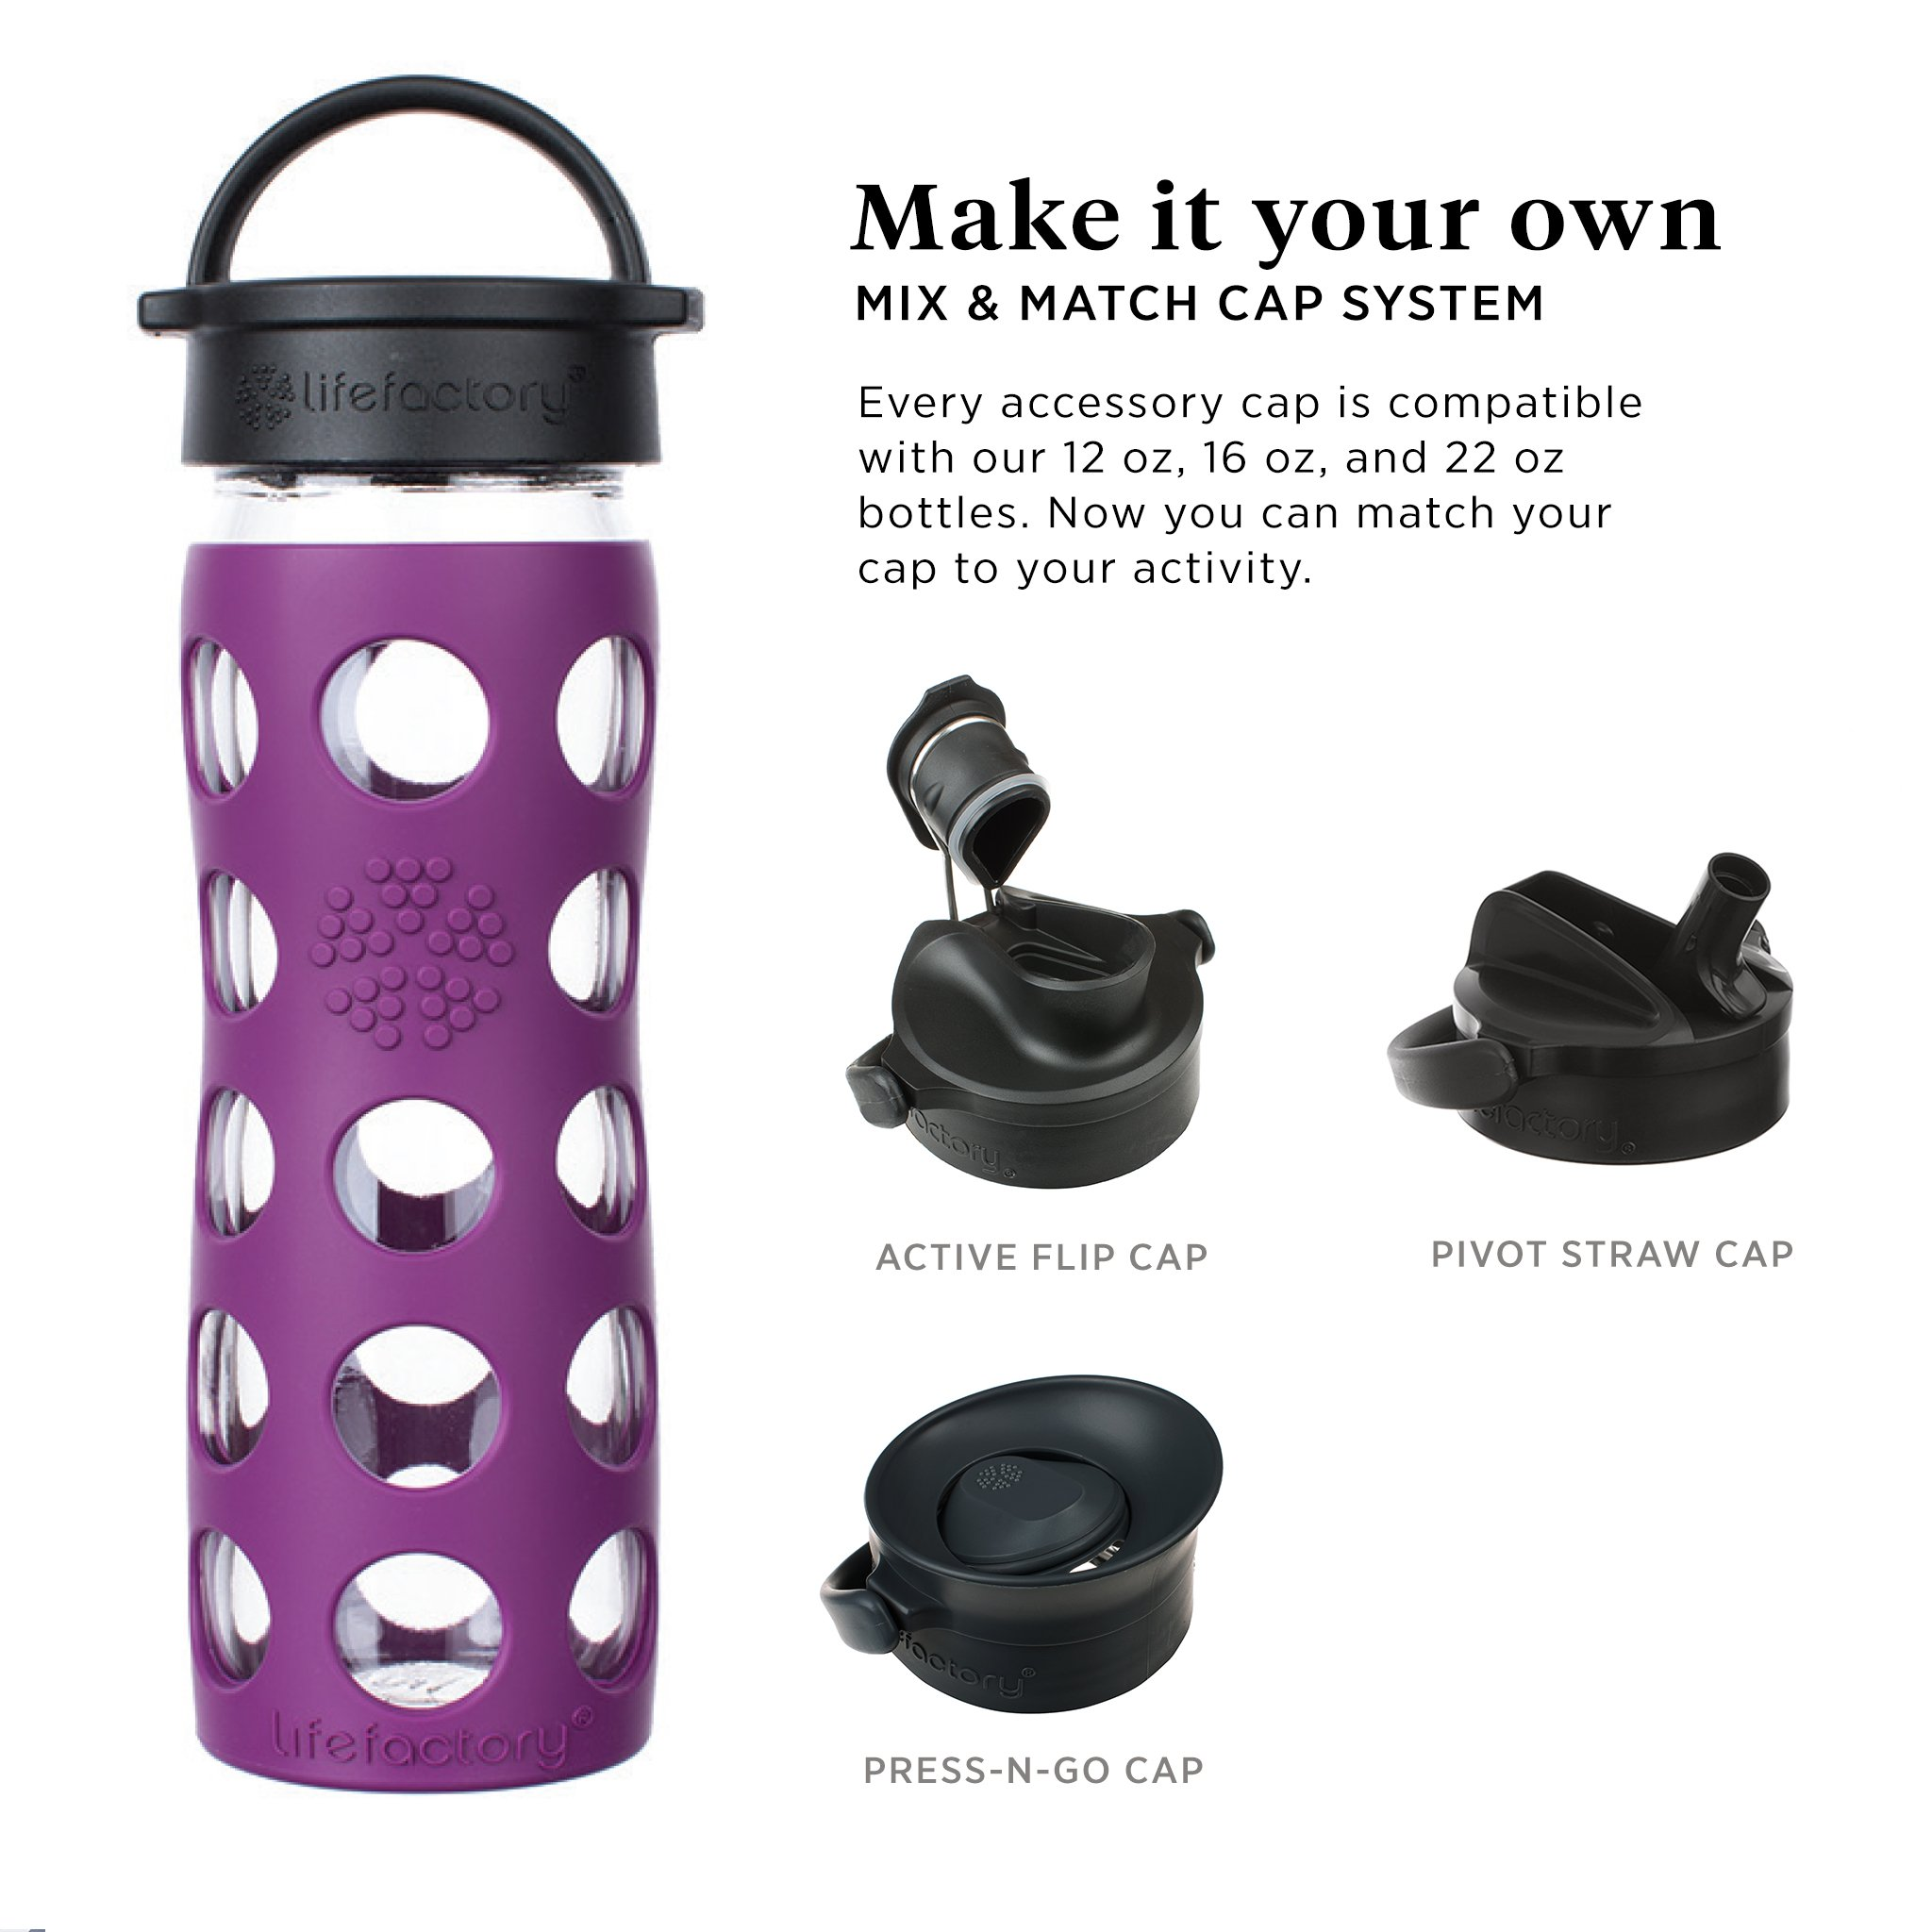 e9913f73847 Lifefactory 22-Ounce BPA-Free Glass Water Bottle with Classic Cap and  Silicone Sleeve